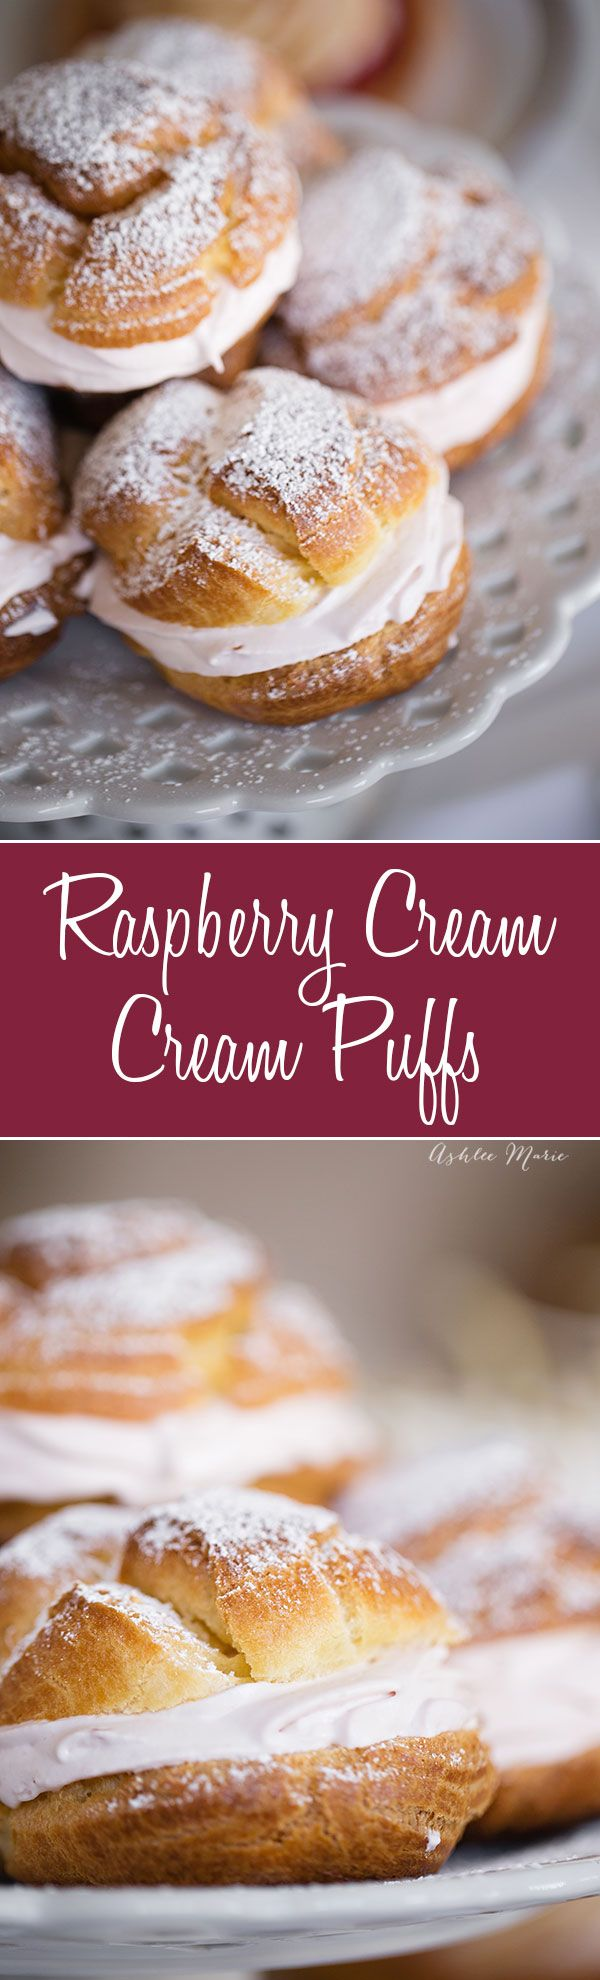 Easy to make cream puffs (with a video tutorial) and filled with a delicious raspberry whipped cream